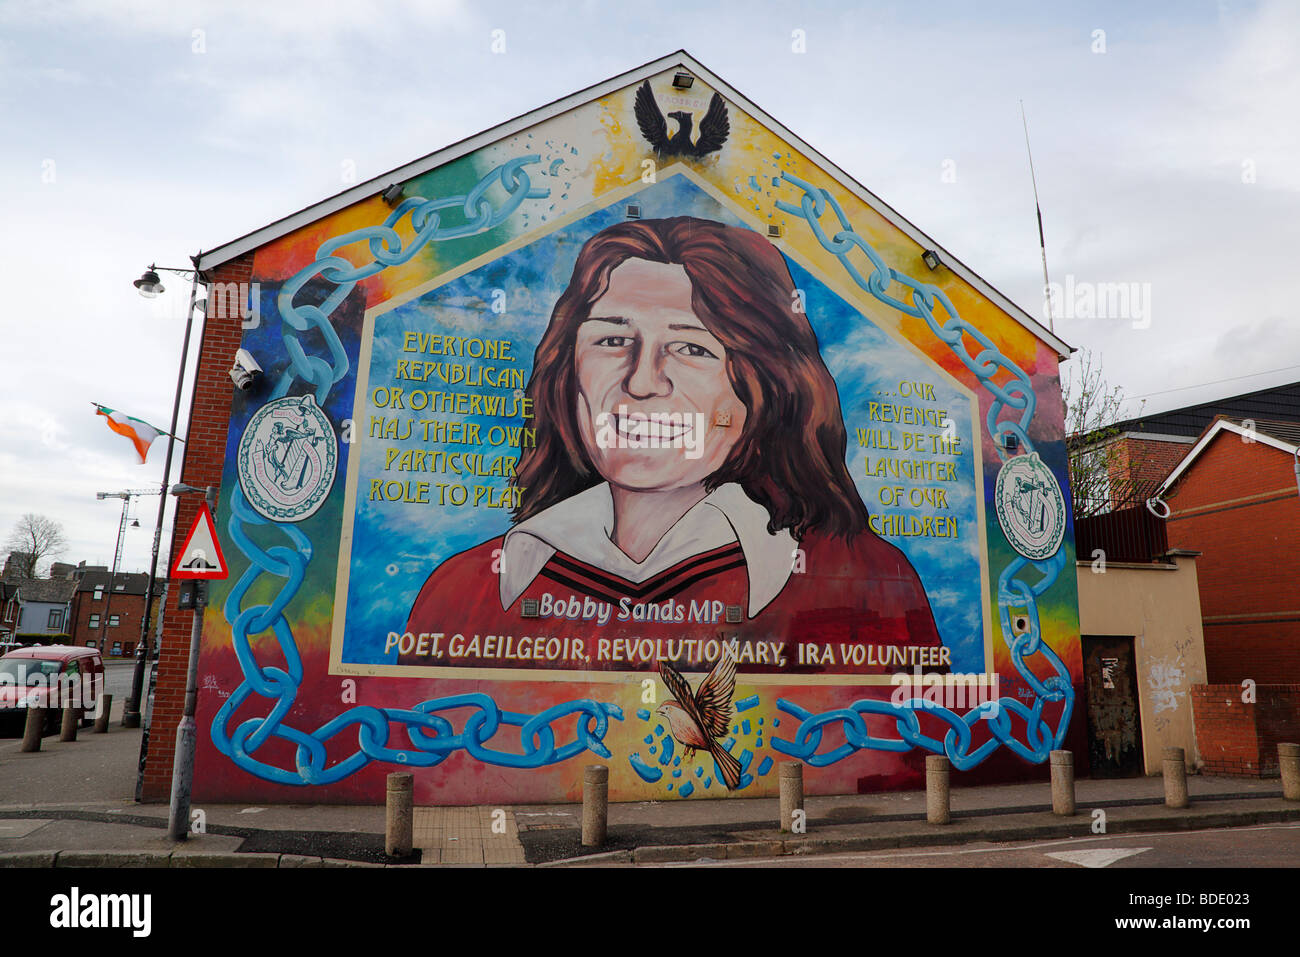 ireland north belfast west falls road mural of bobby